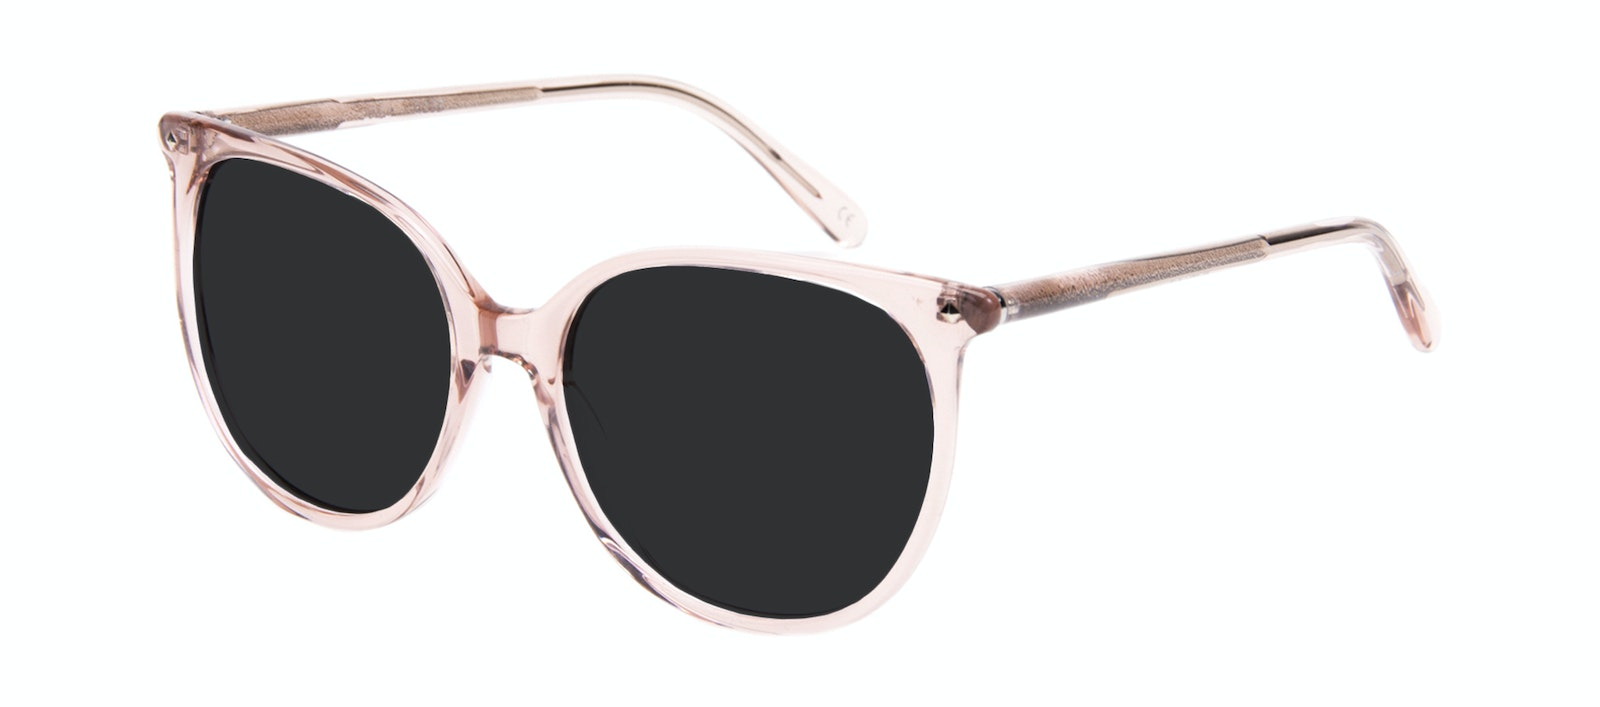 Affordable Fashion Glasses Round Sunglasses Women Area Rose Tilt